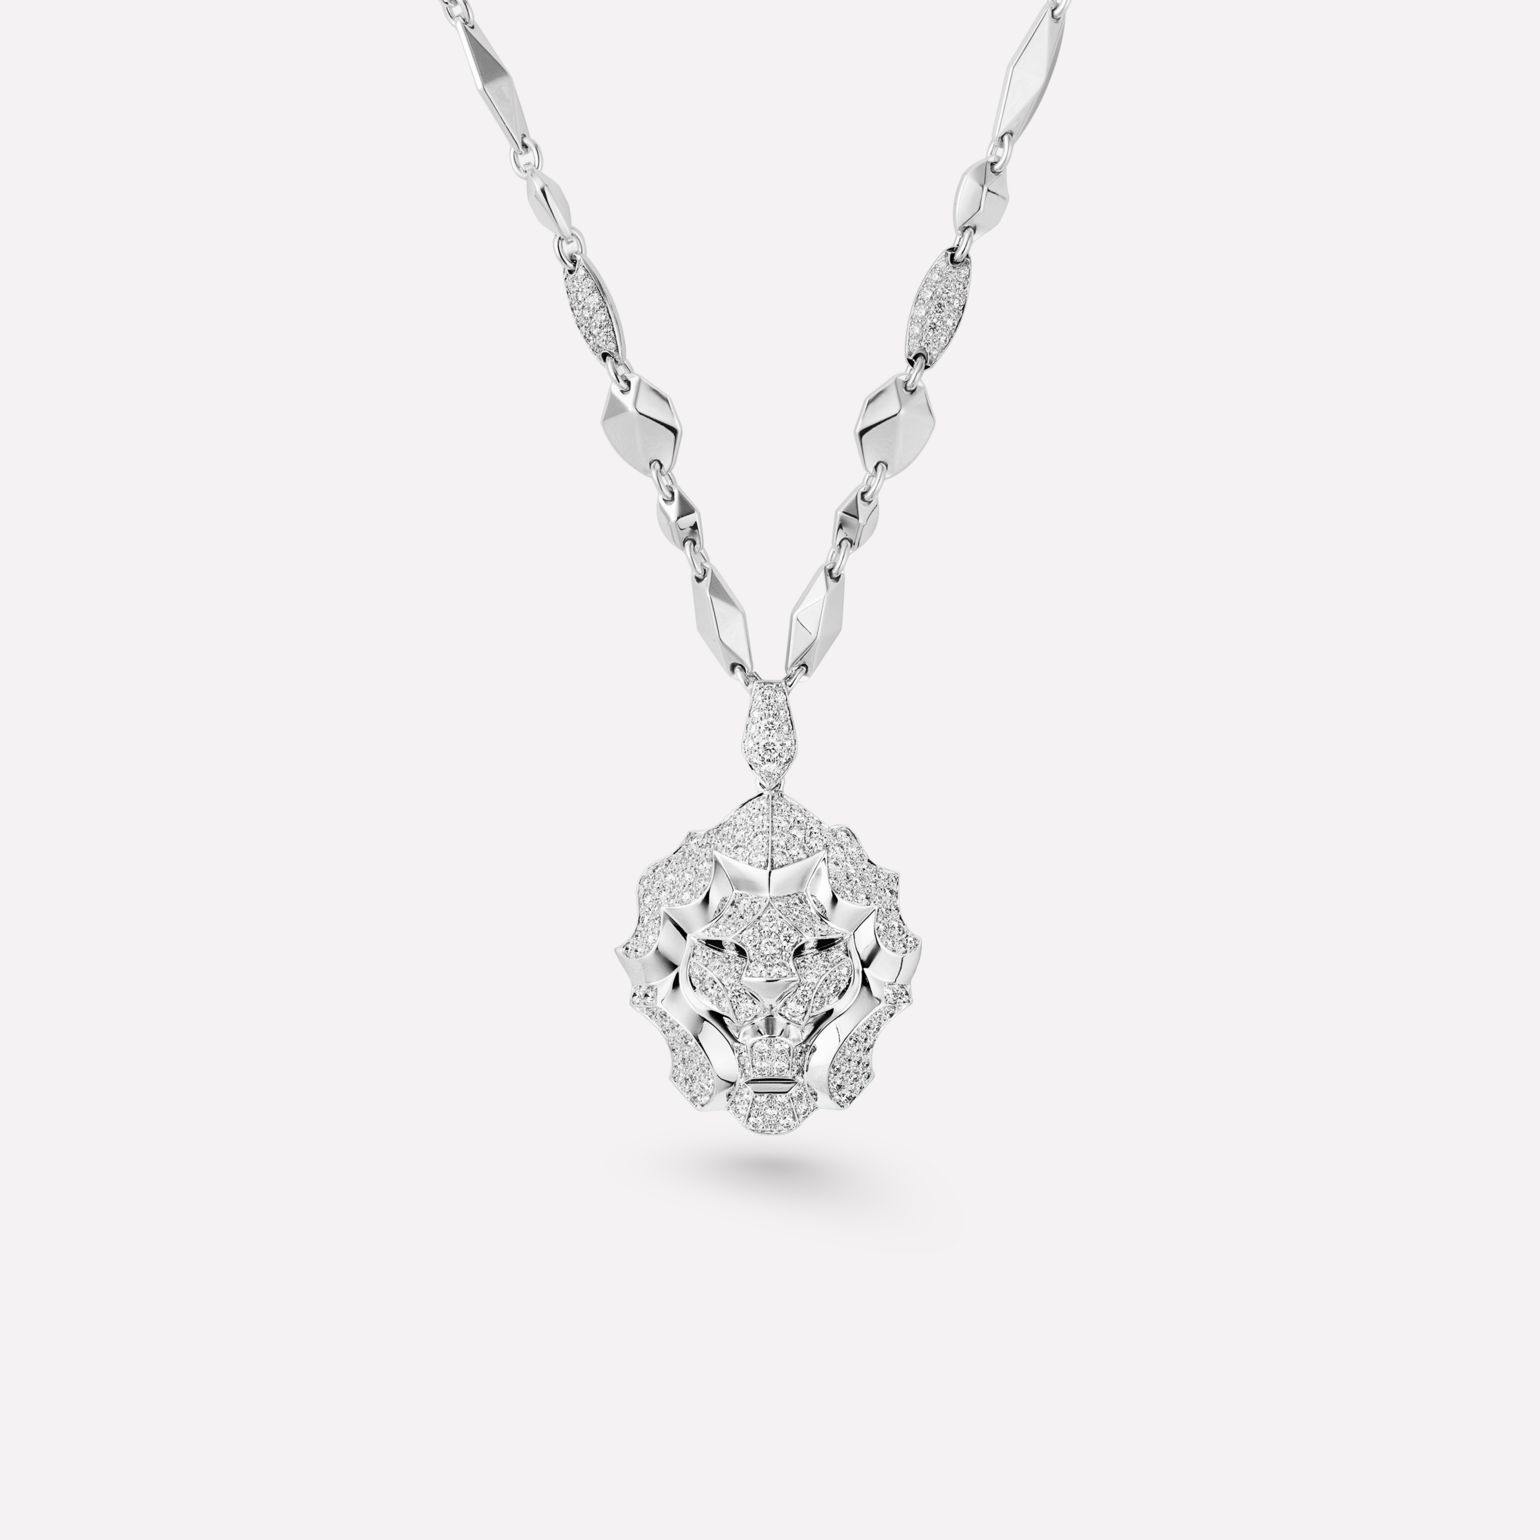 Collier Sous le Signe du Lion Motif lion grand modèle, en or blanc 18 carats et diamants